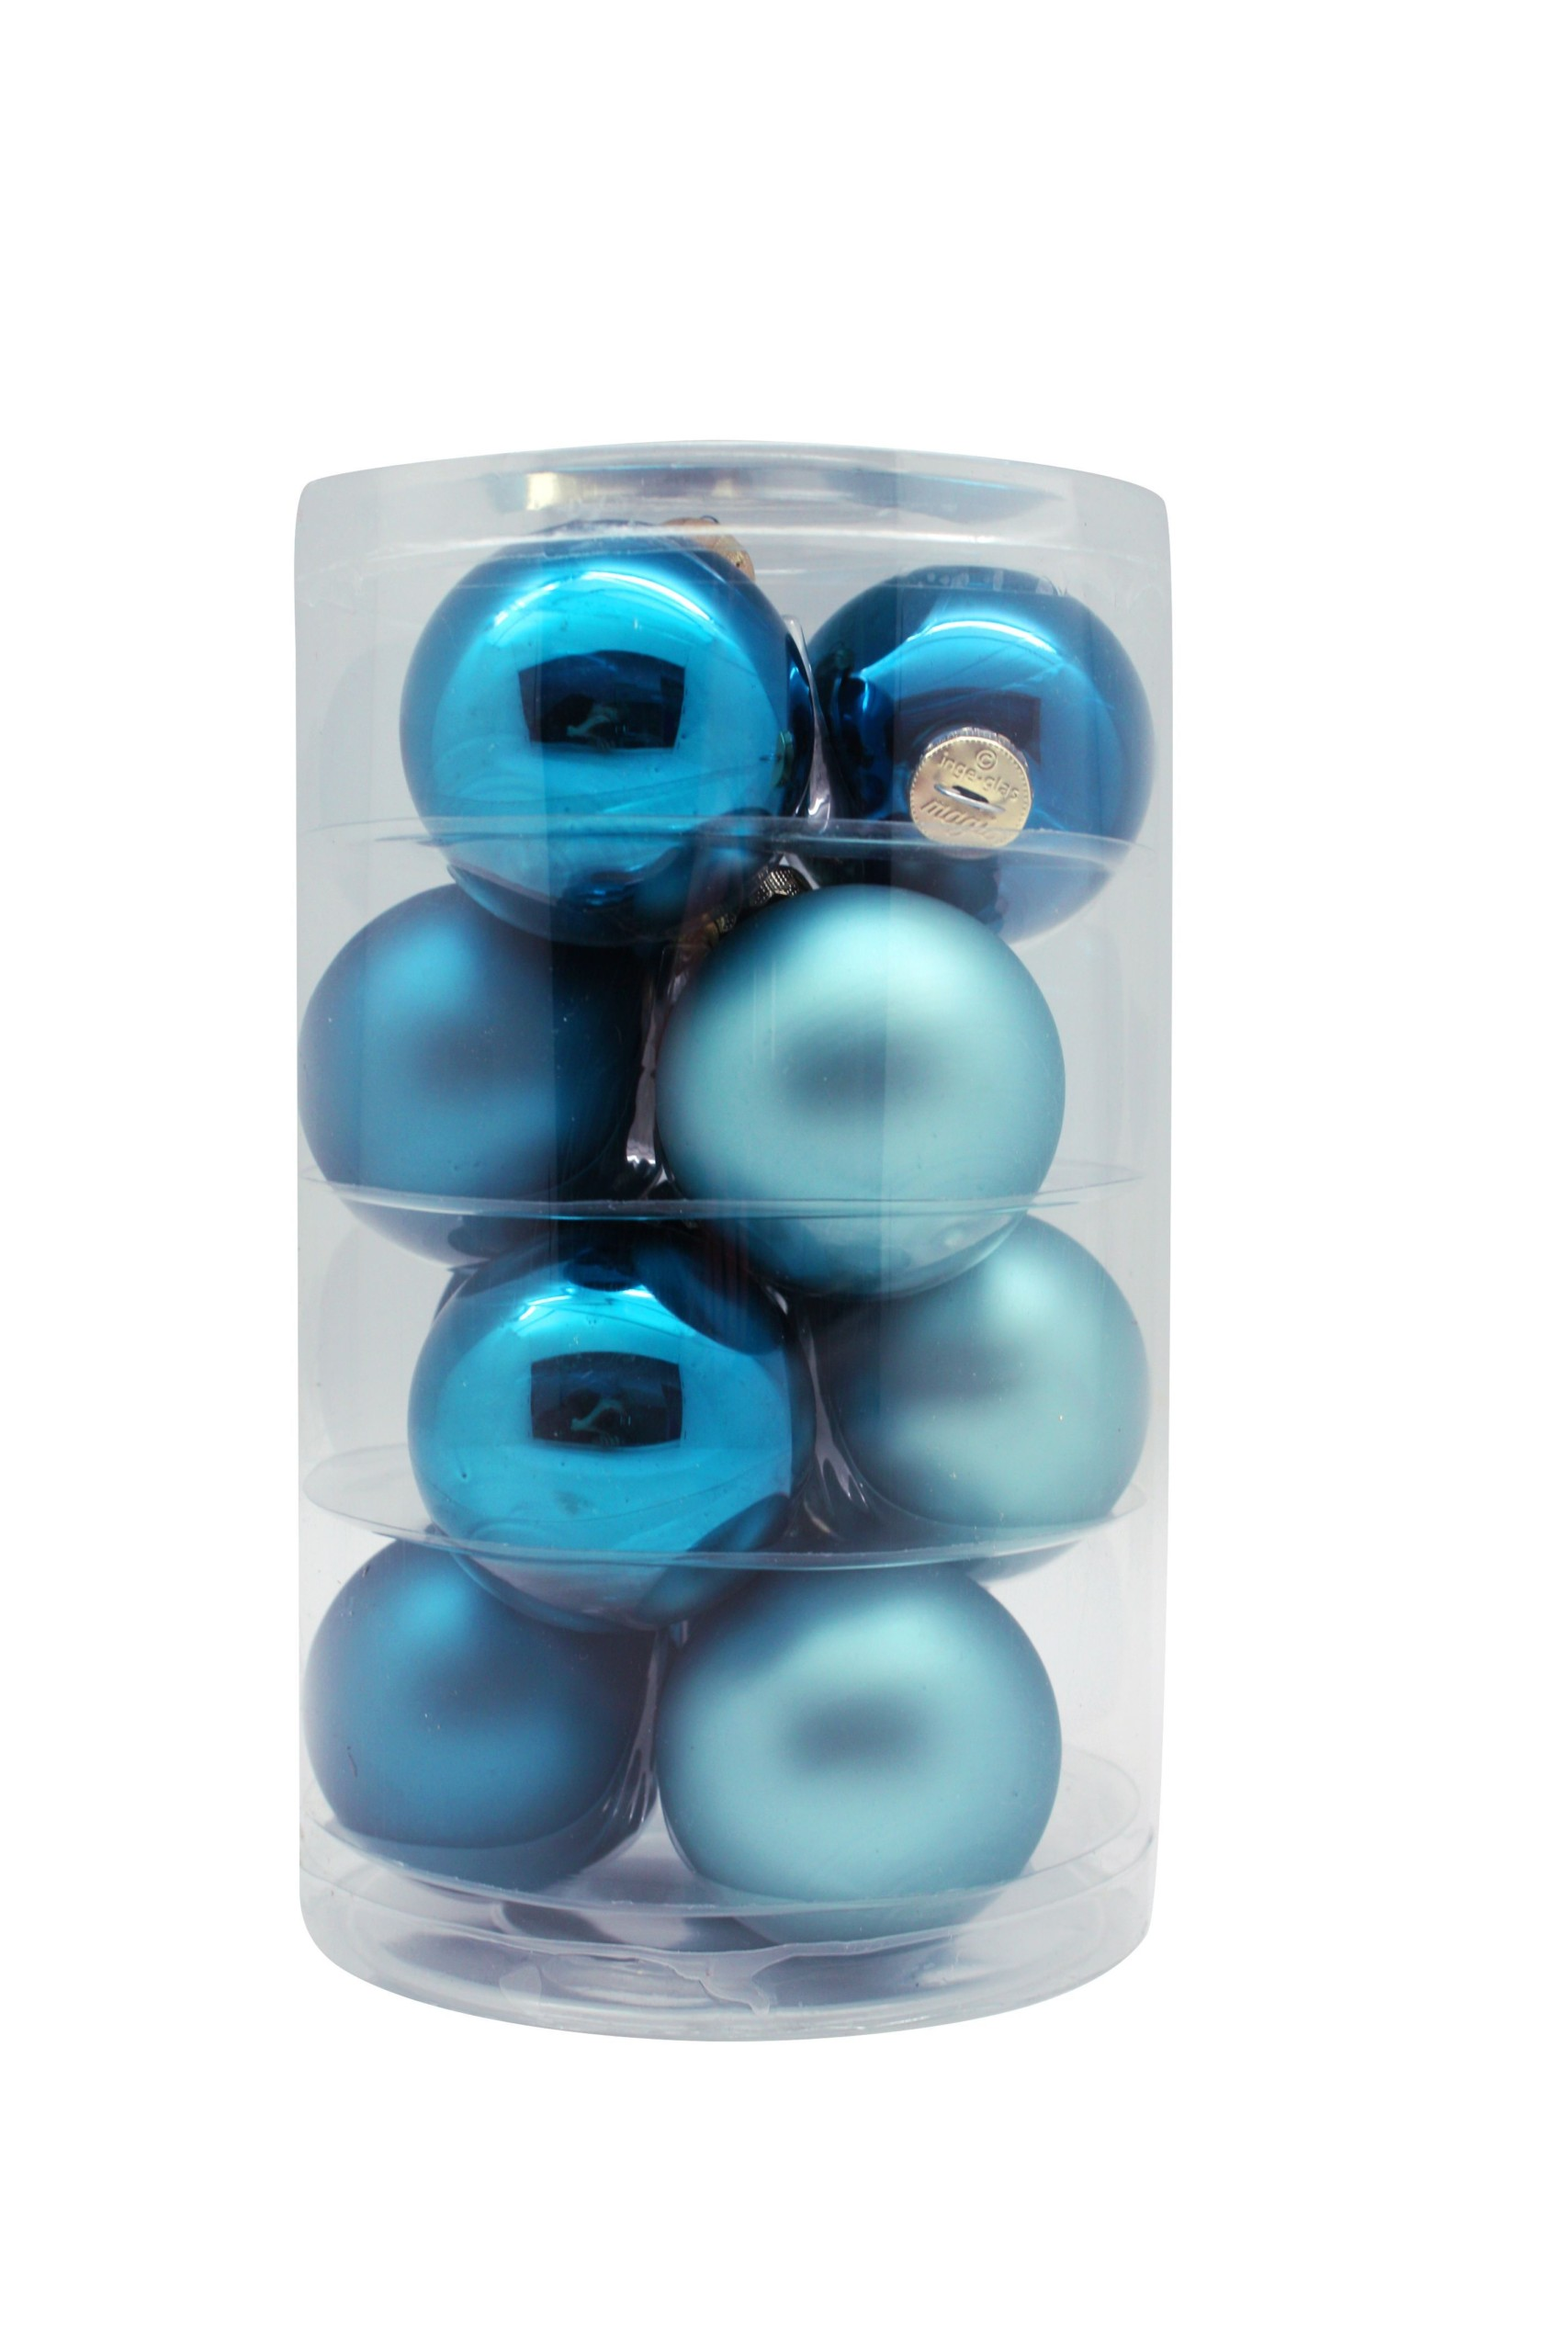 Classy-peacock-blue-inge-glass-baubles-purely-christmas-15246C105